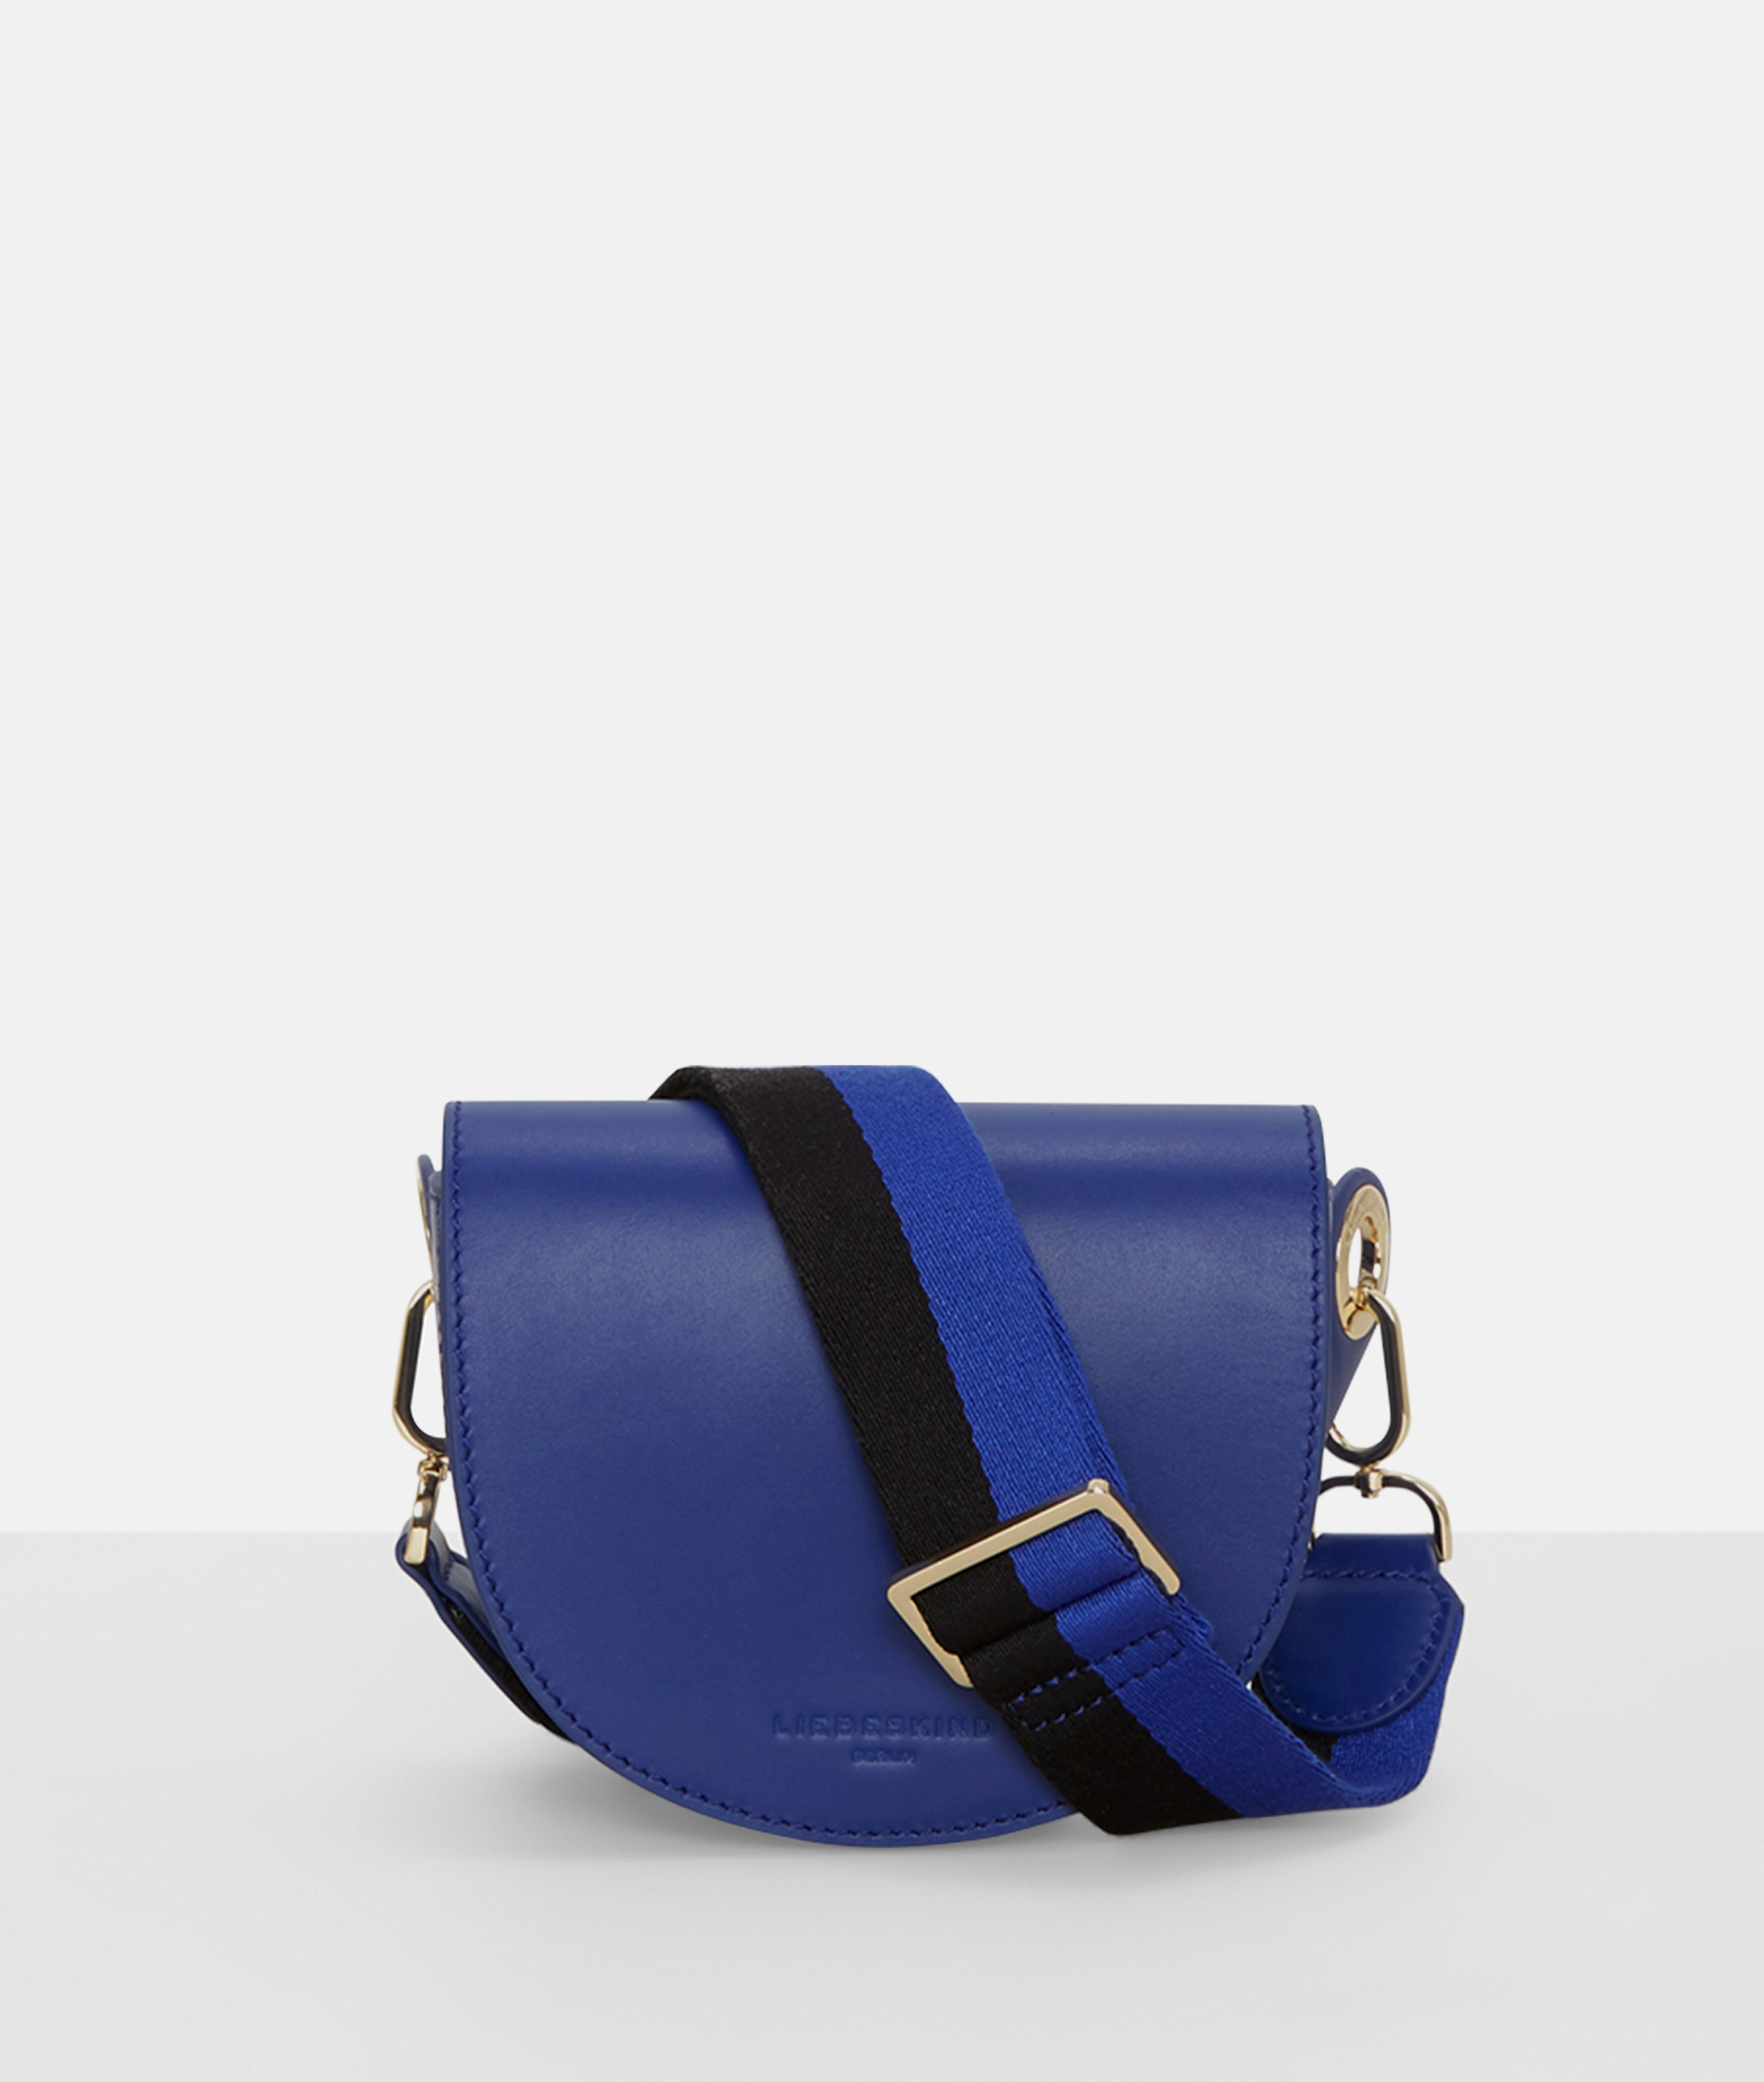 liebeskind berlin - Tasche MixeDbag Deep Blue Belt Bag, Blau